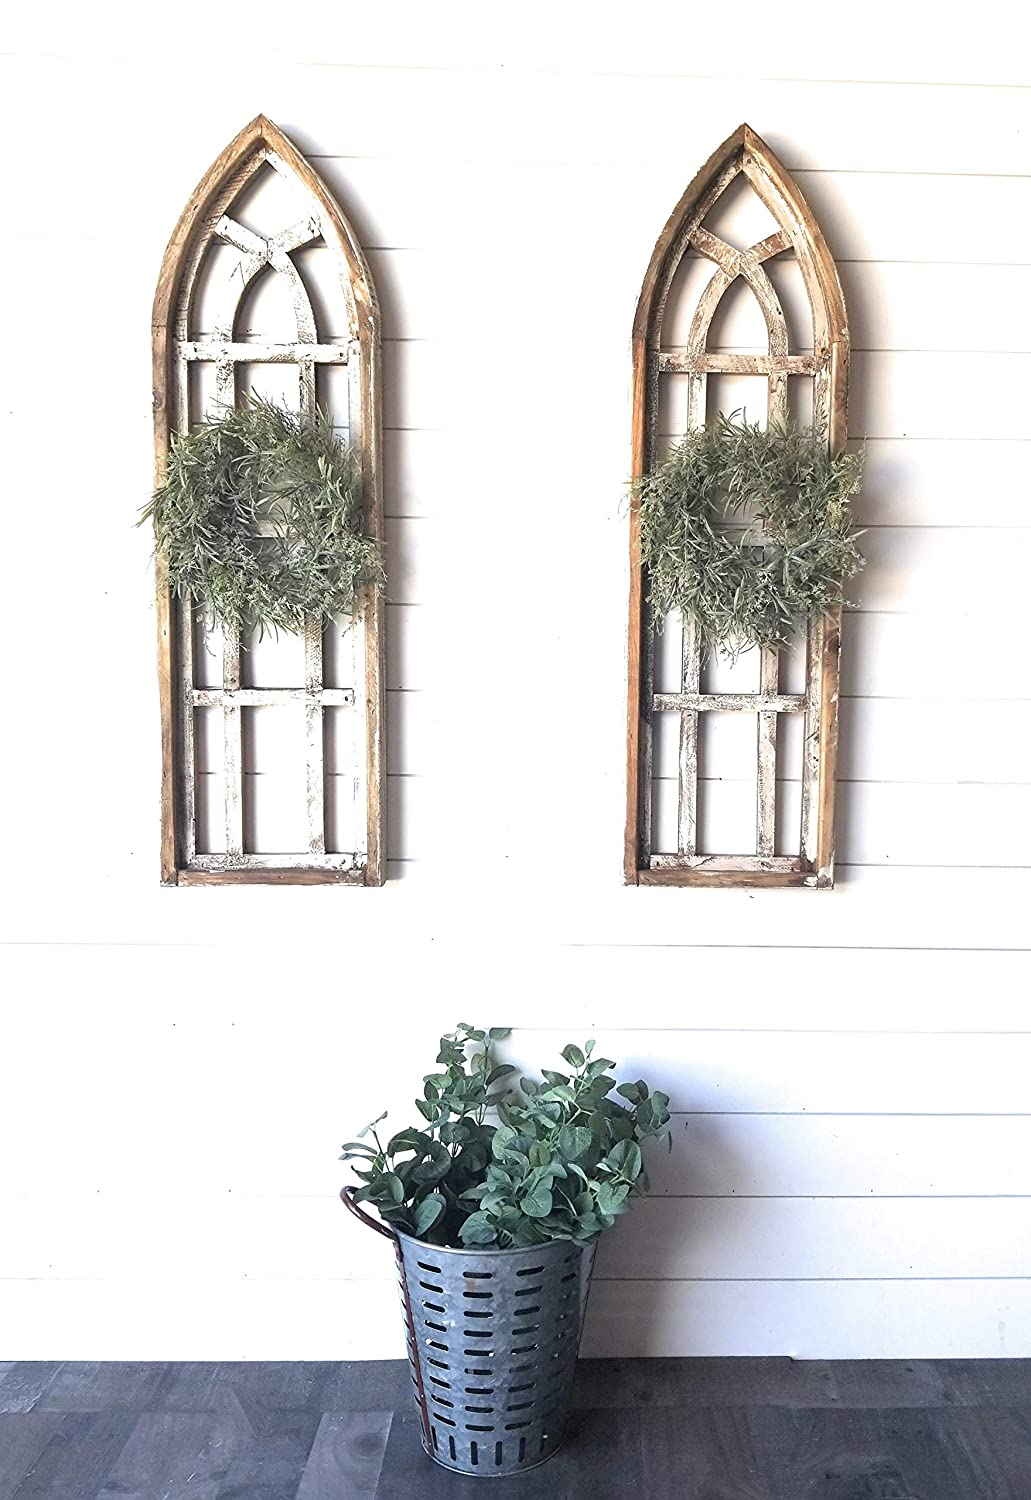 The White Waters 43 Farmhouse Wooden Wall Window Arches Set of 2 Rustic Cathedral Wood Window